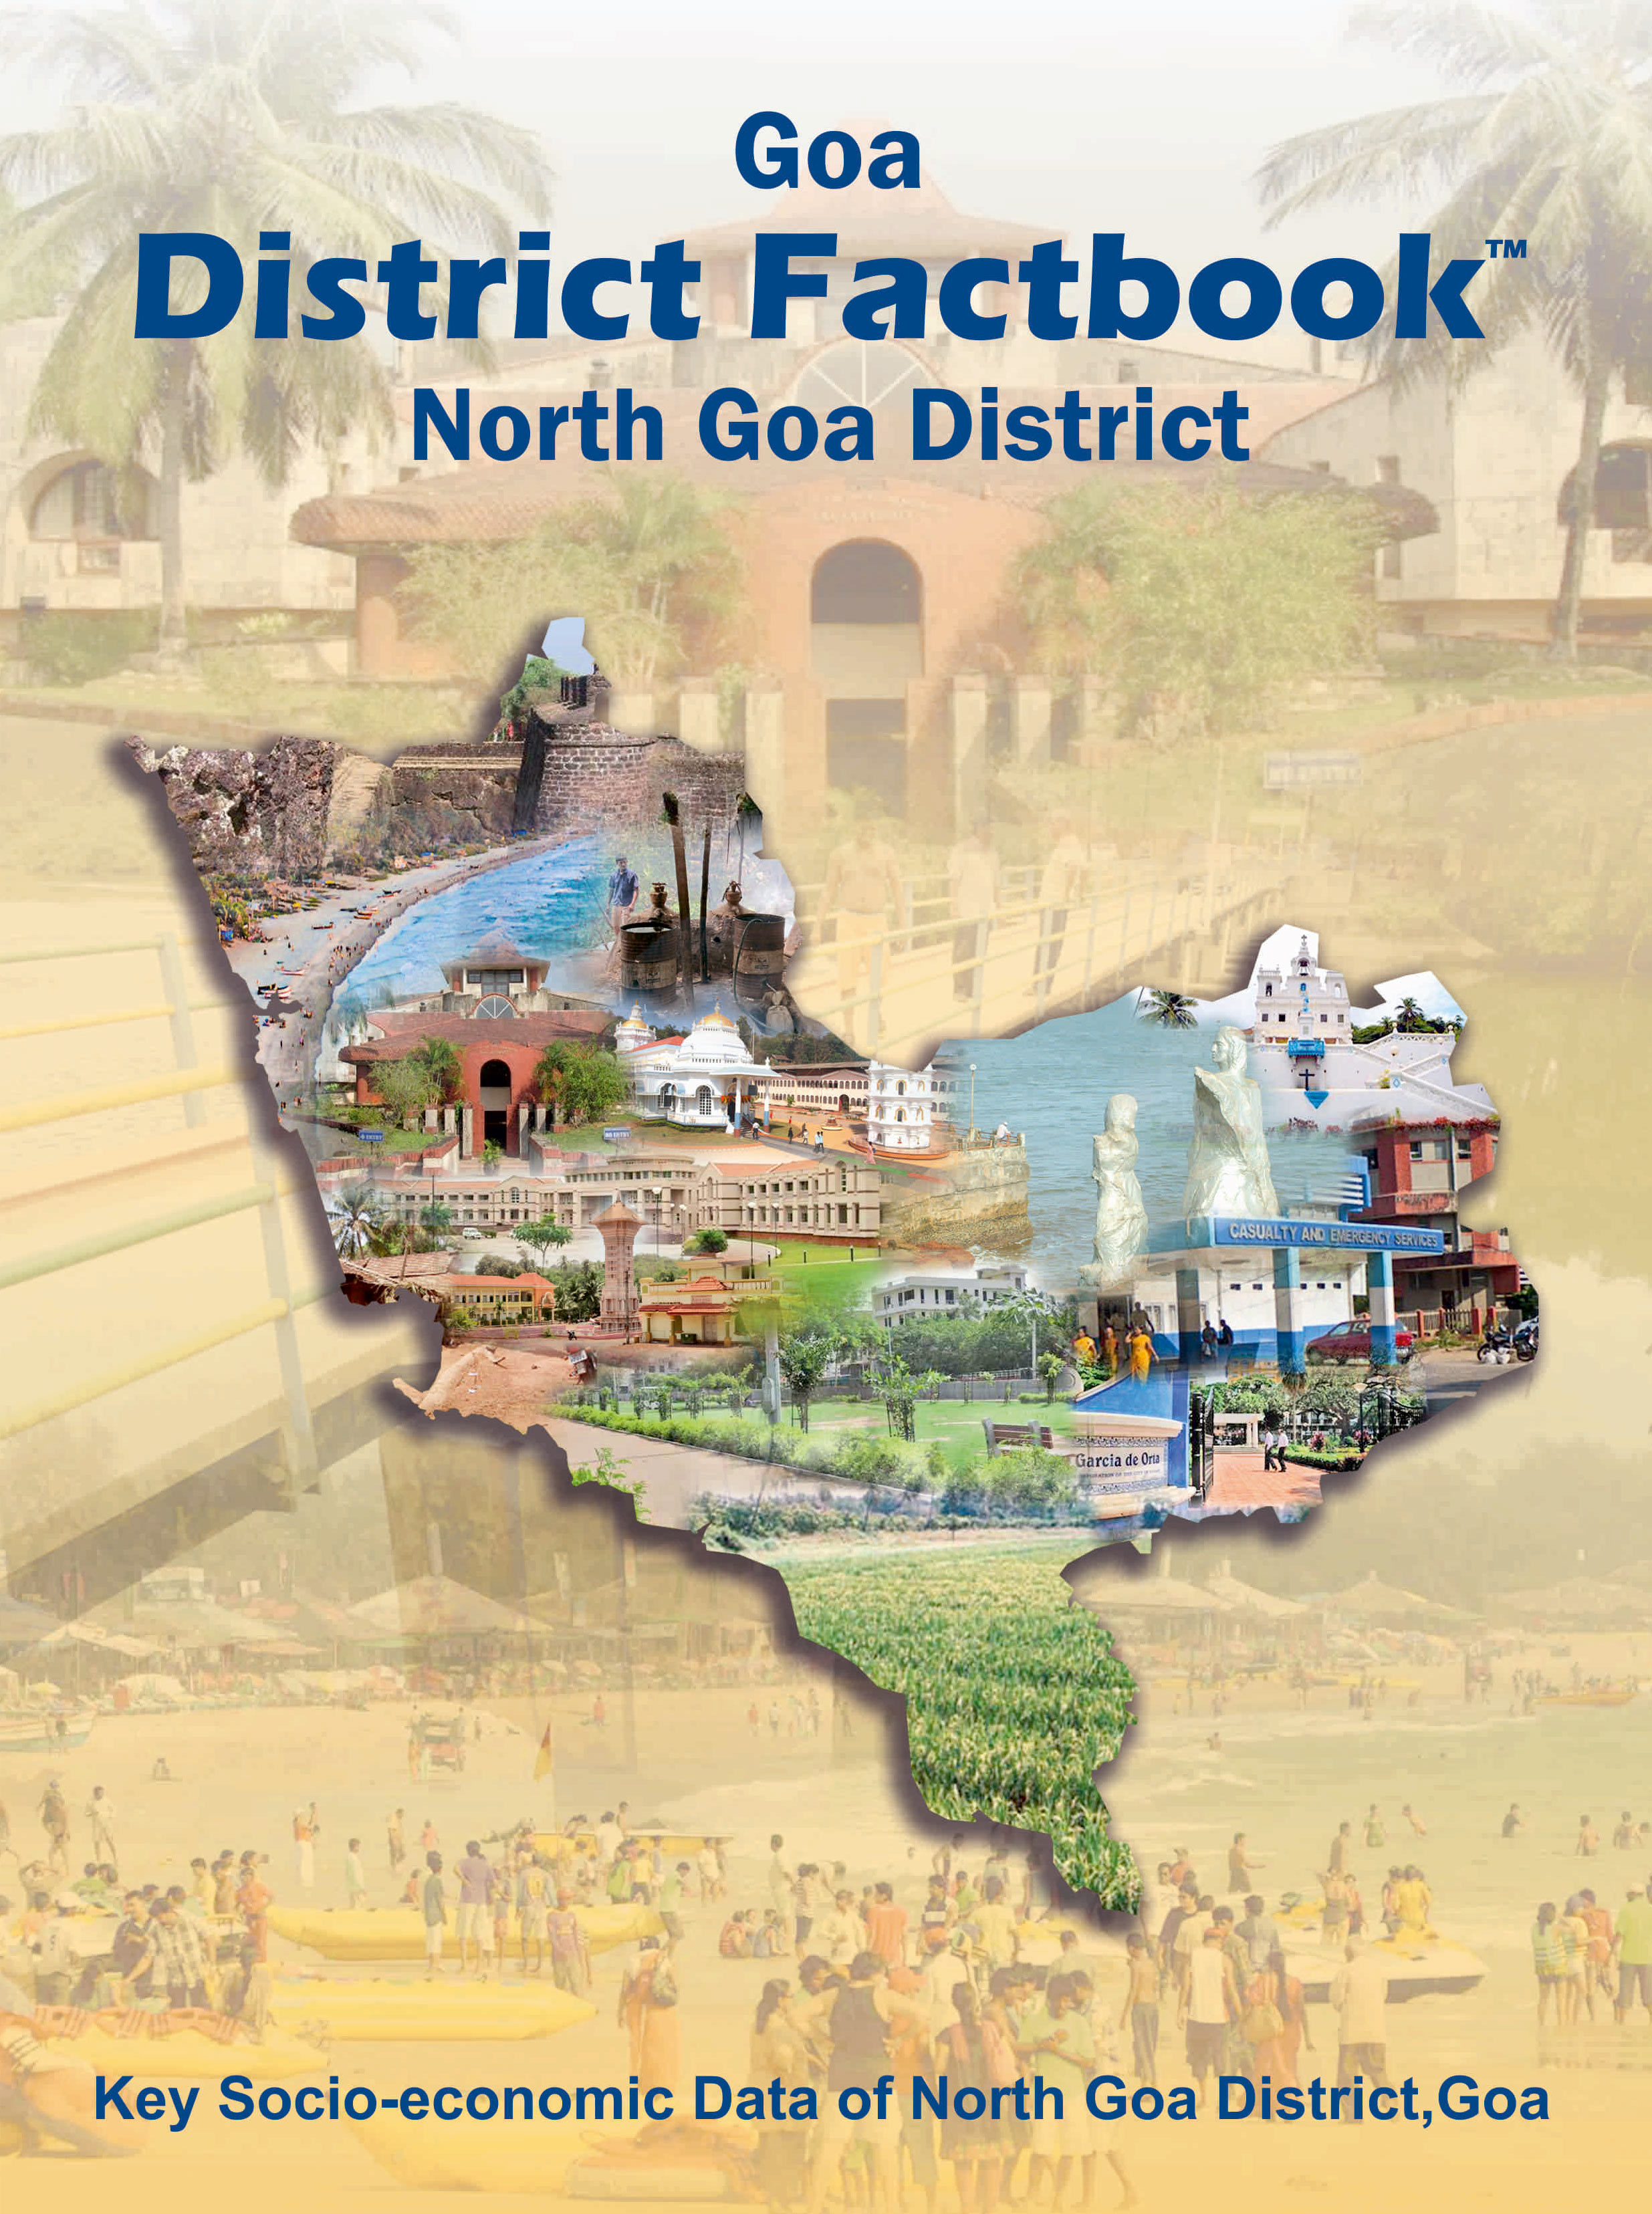 Goa District Factbook : North Goa District